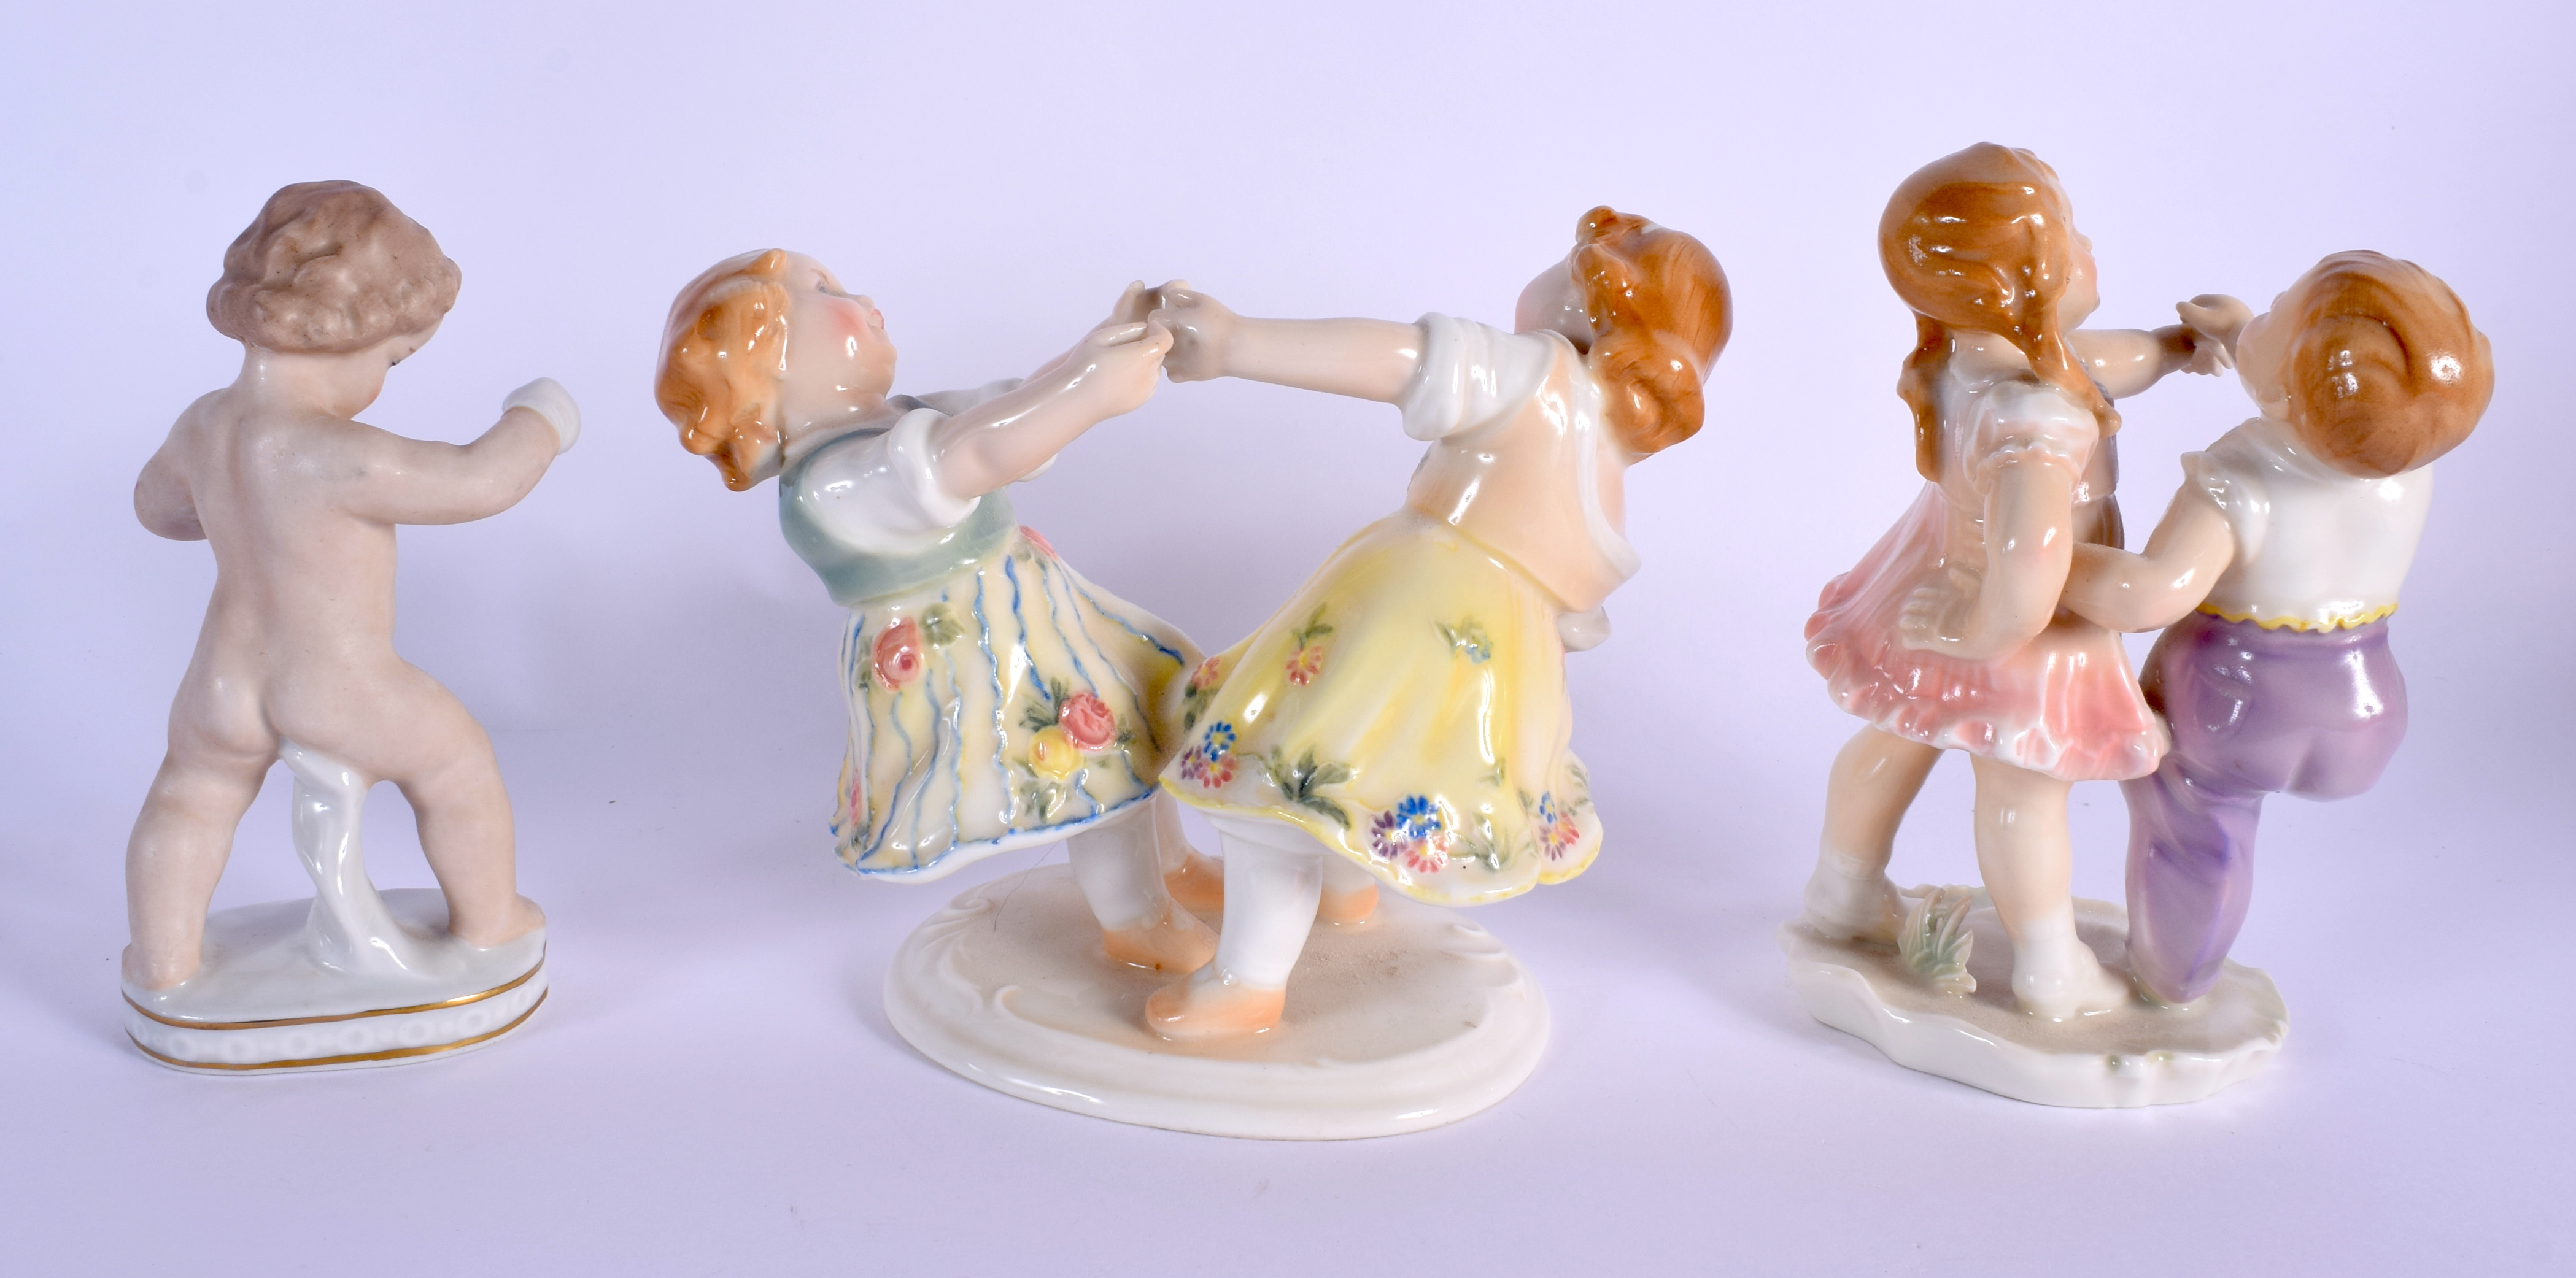 TWO KARL ENZ VOLKSTEDT PORCELAIN FIGURAL GROUPS together with another similar. Largest 14 cm x 14 cm - Image 2 of 3